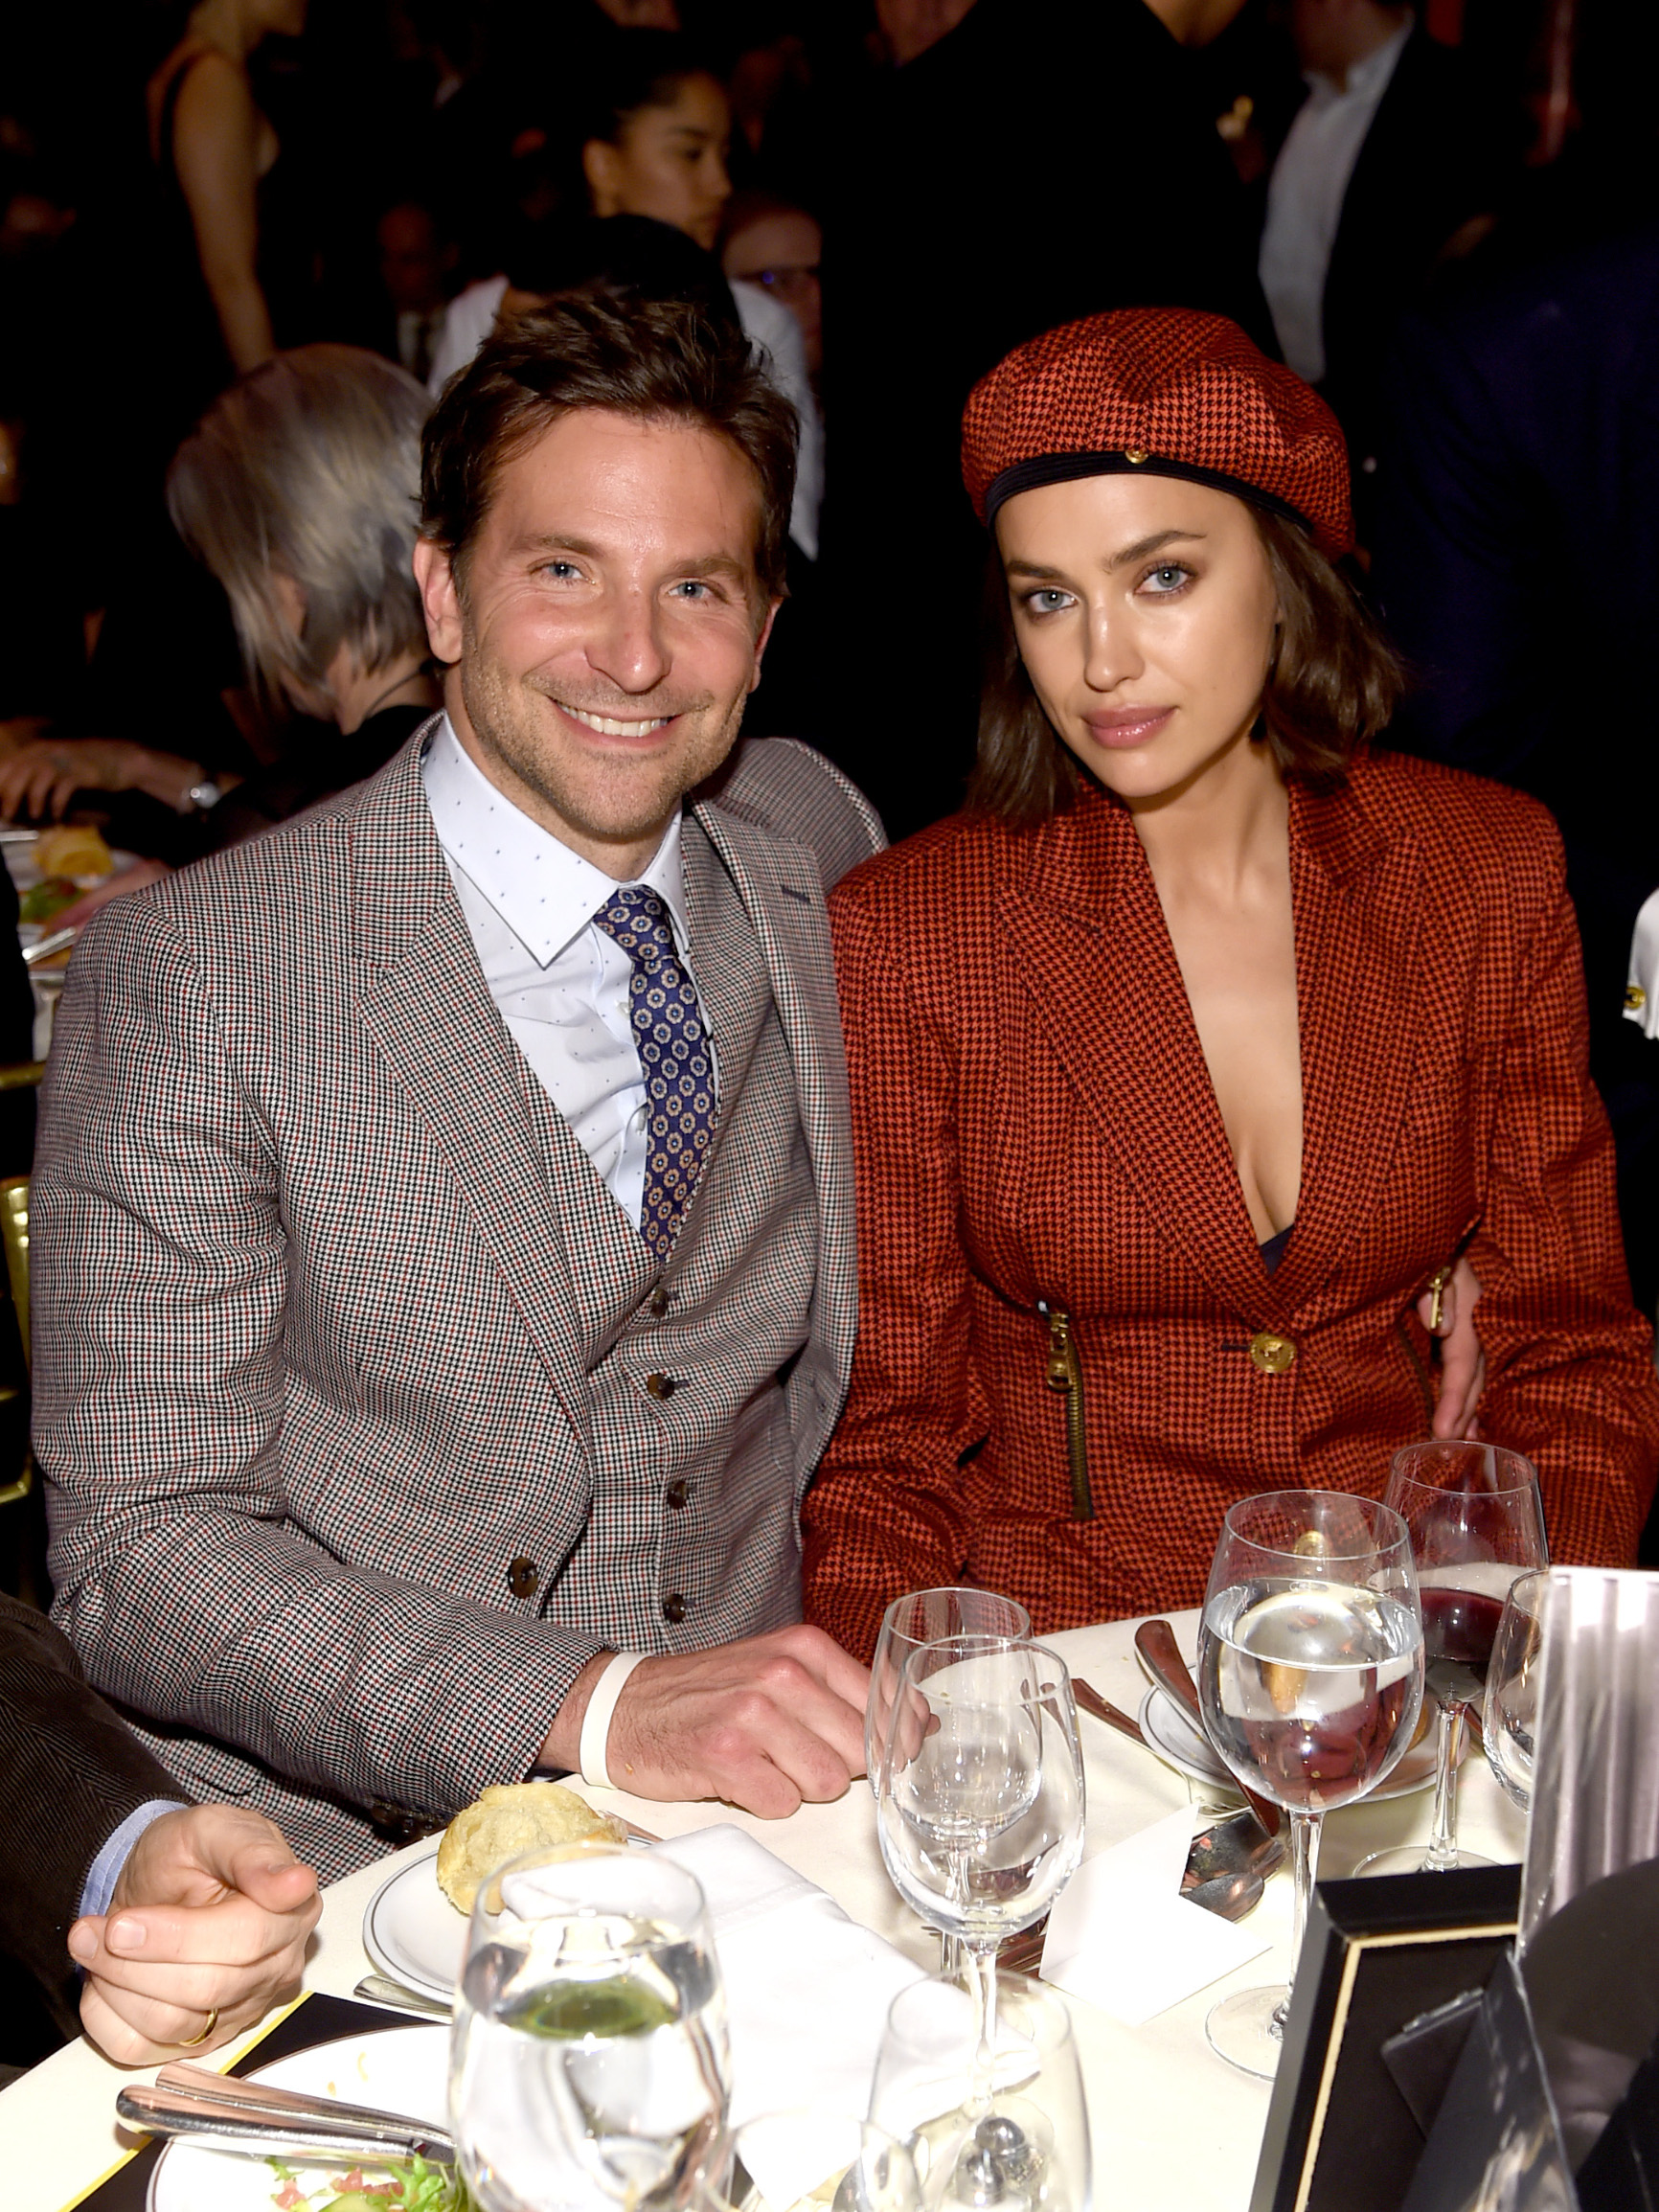 NEW YORK, NY - JANUARY 08: Bradley Cooper and Irina Shayk attend The National Board of Review Annual Awards Gala at Cipriani 42nd Street on January 8, 2019 in New York City.  (Photo by Jamie McCarthy/Getty Images for National Board of Review)